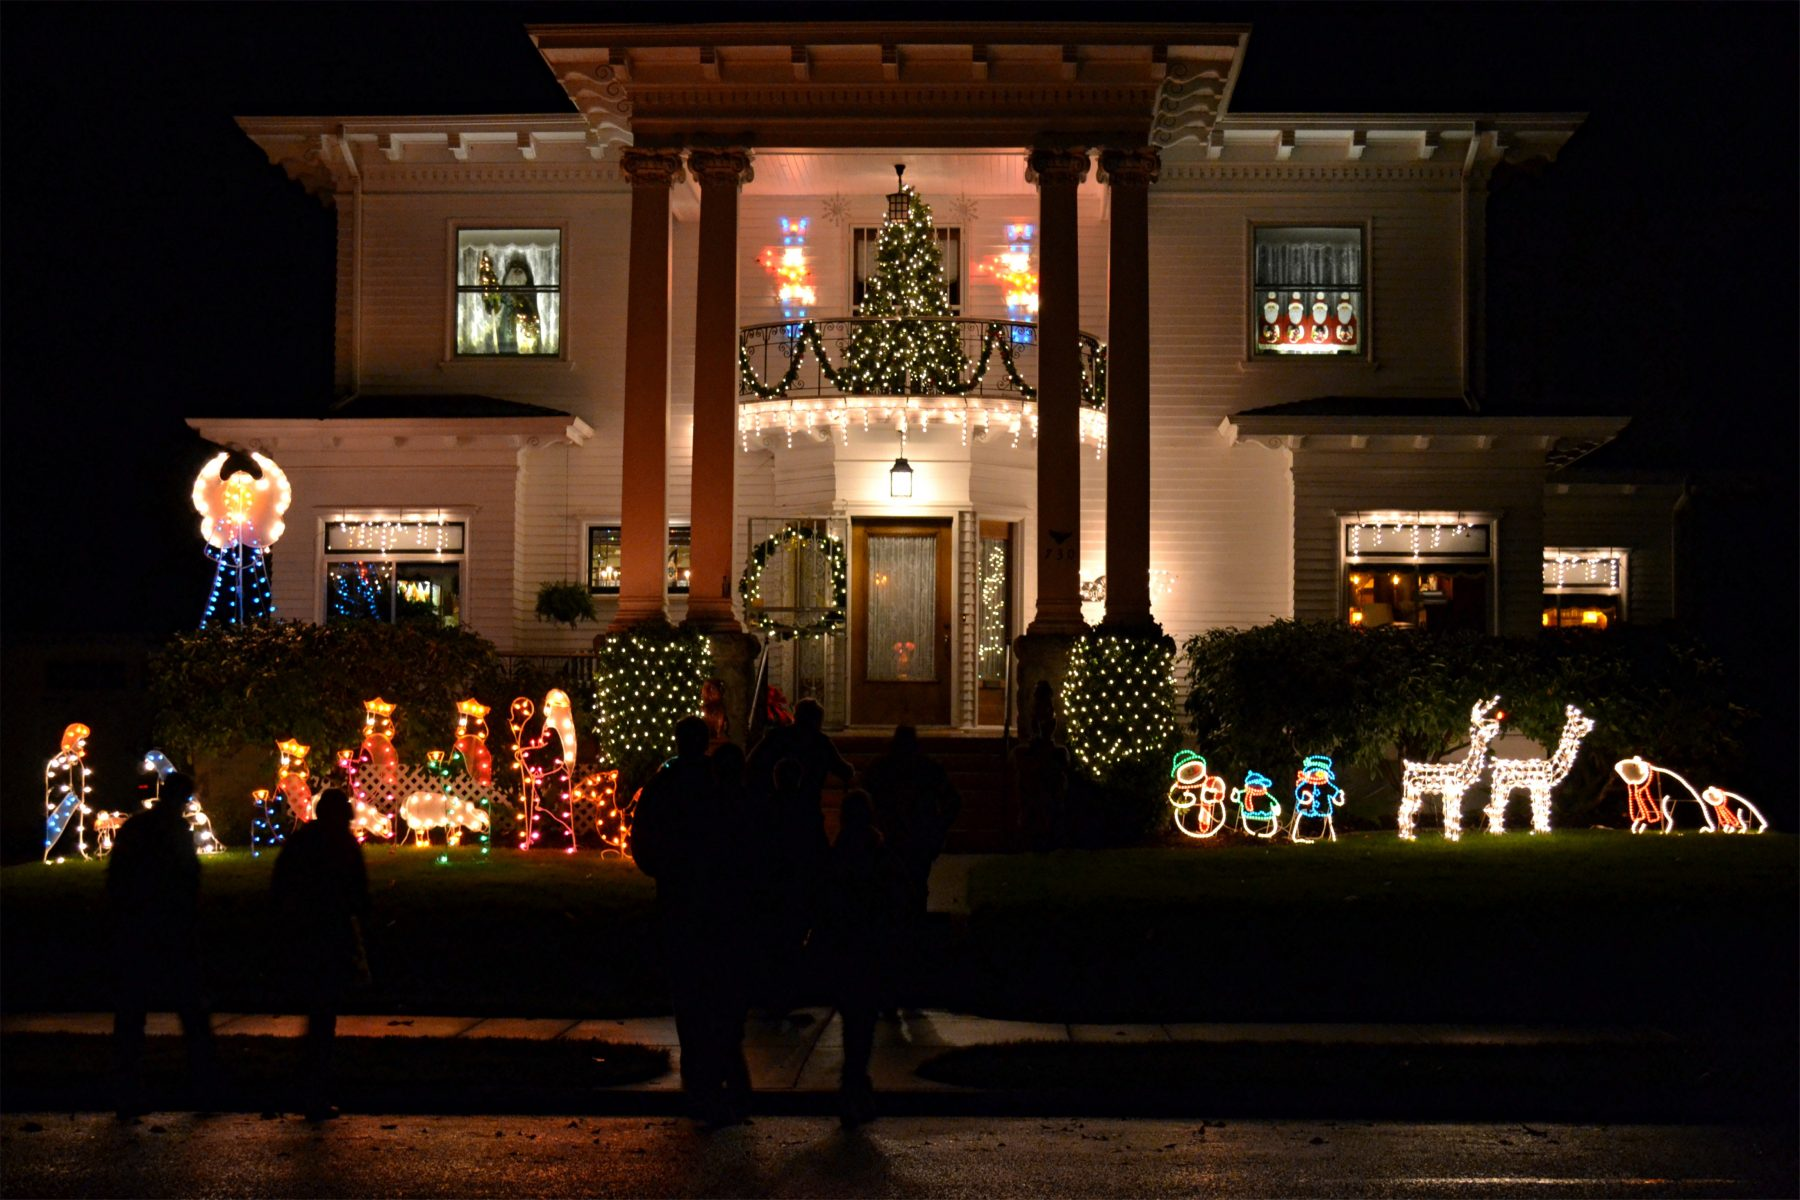 A historic home in Albany Oregon lit with Christmas lights and decorations on the exterior